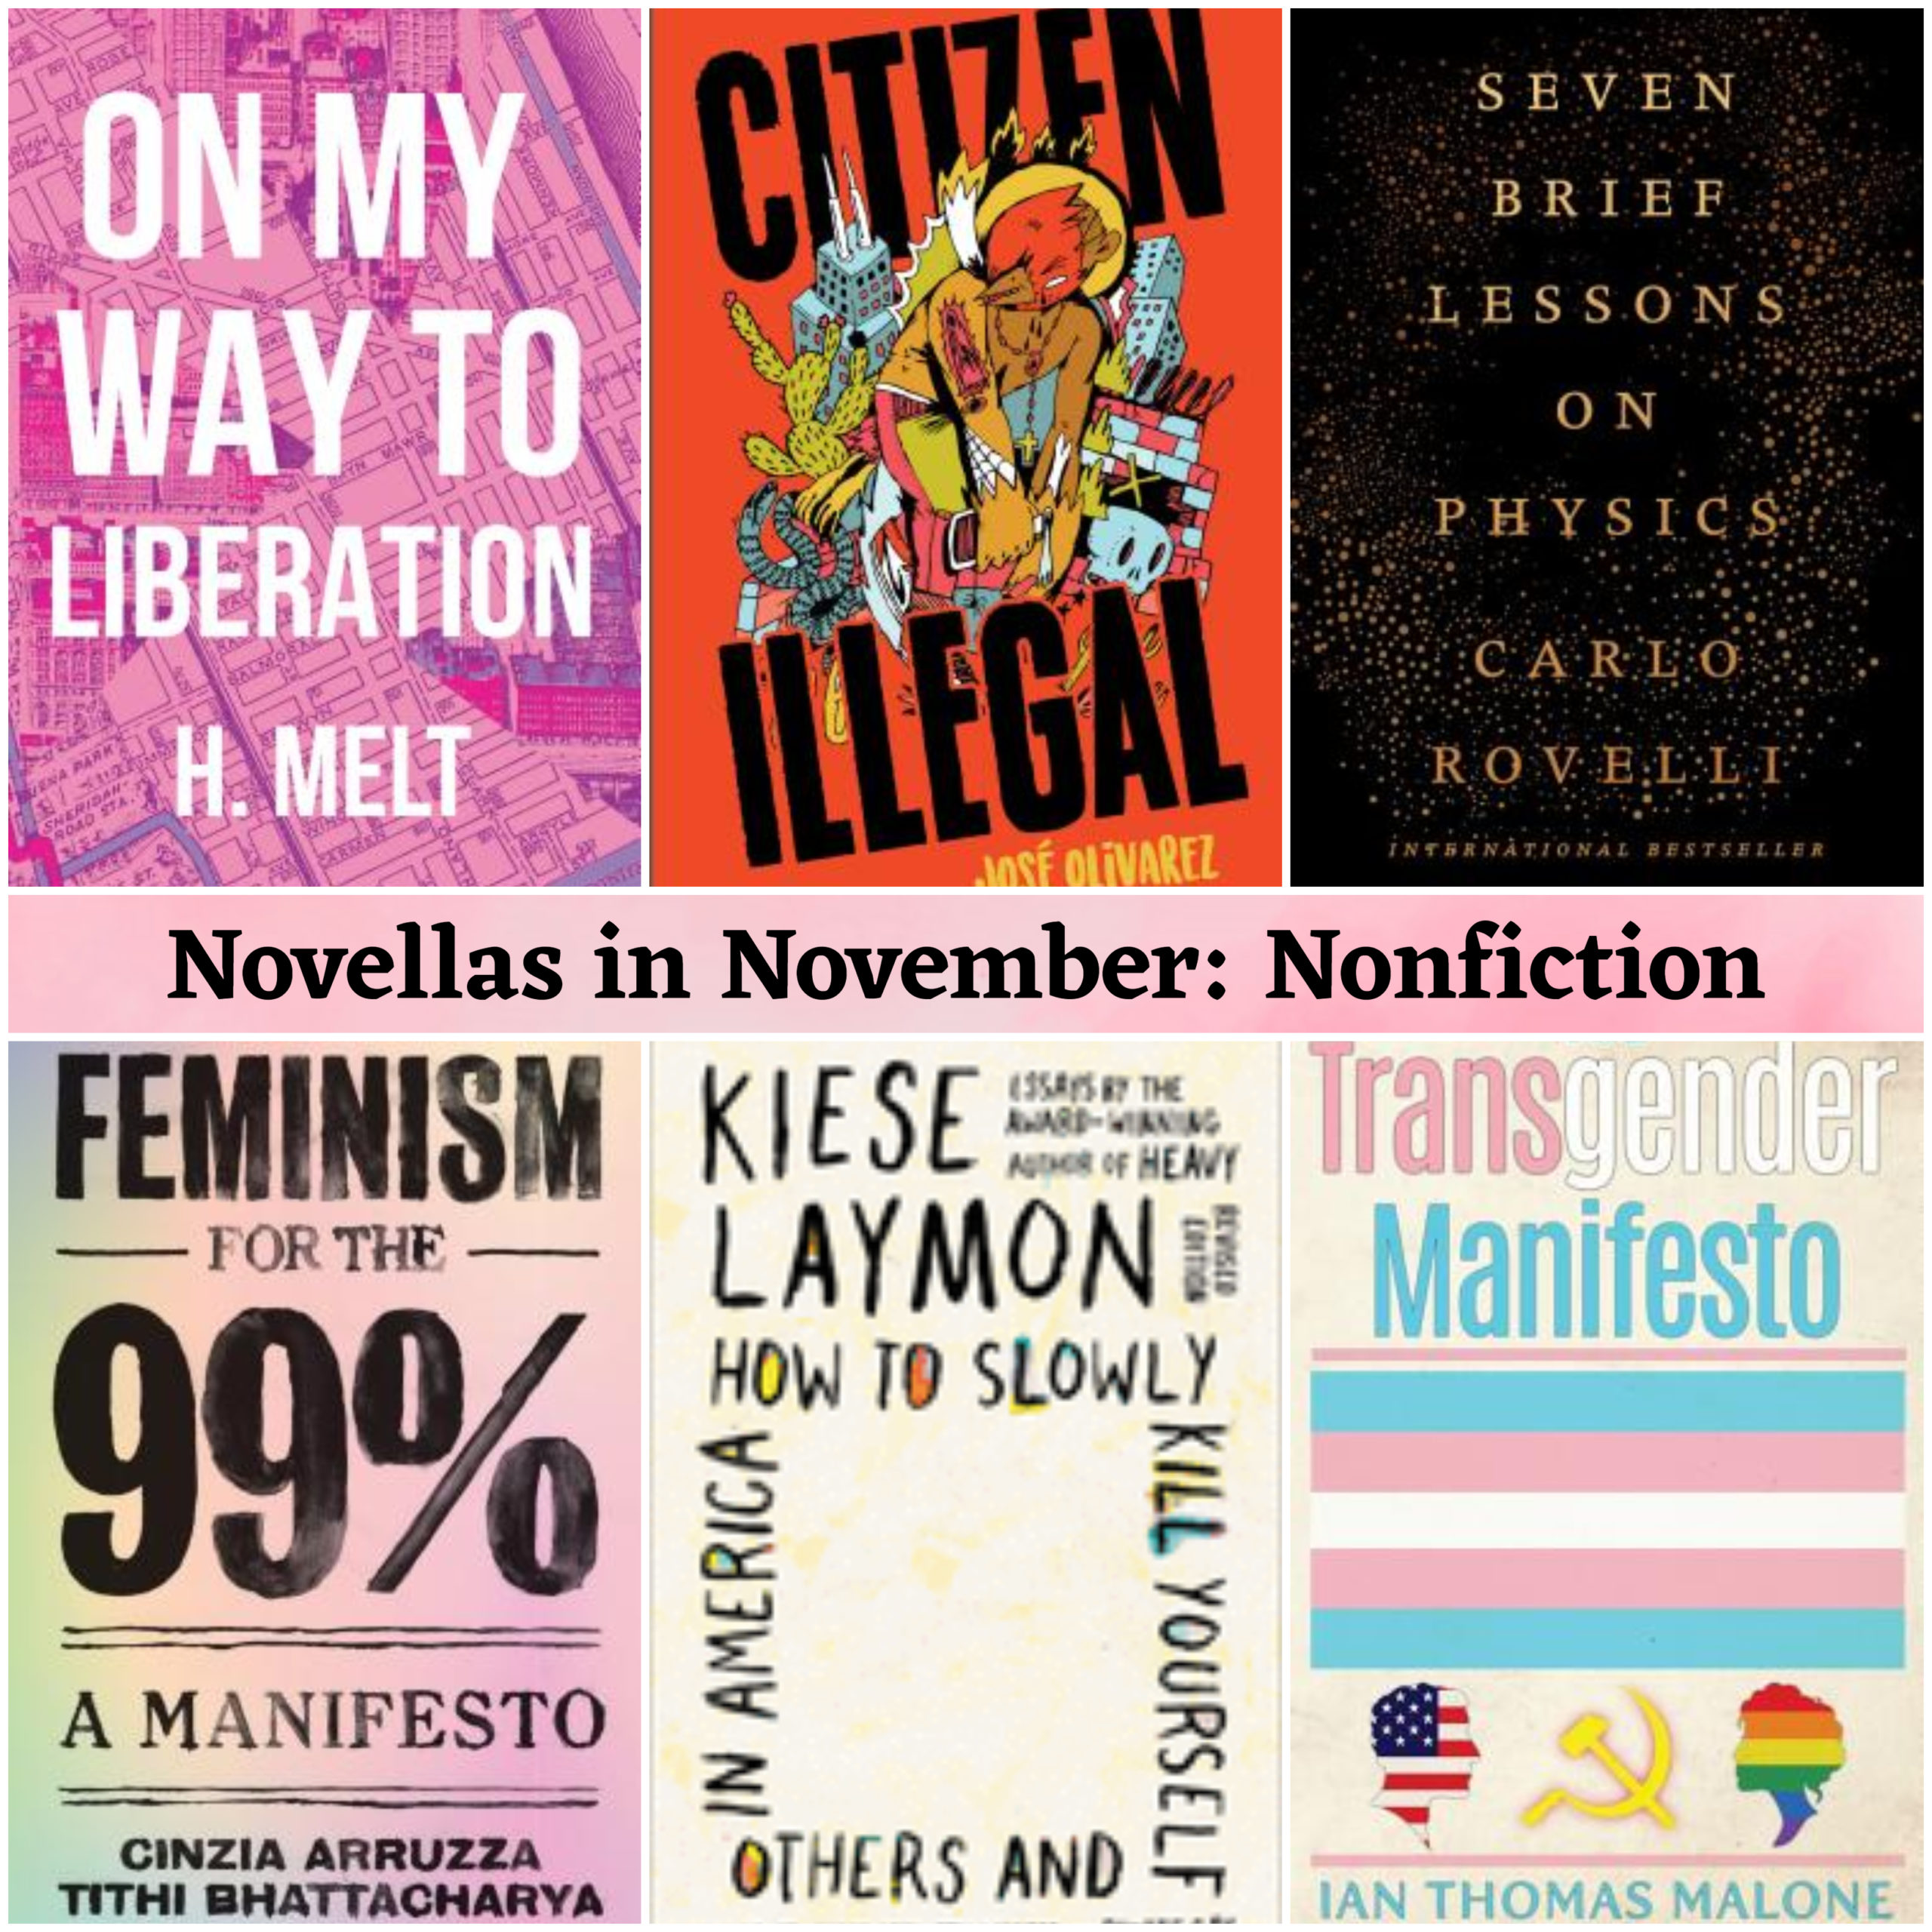 Novellas in November: Nonfiction